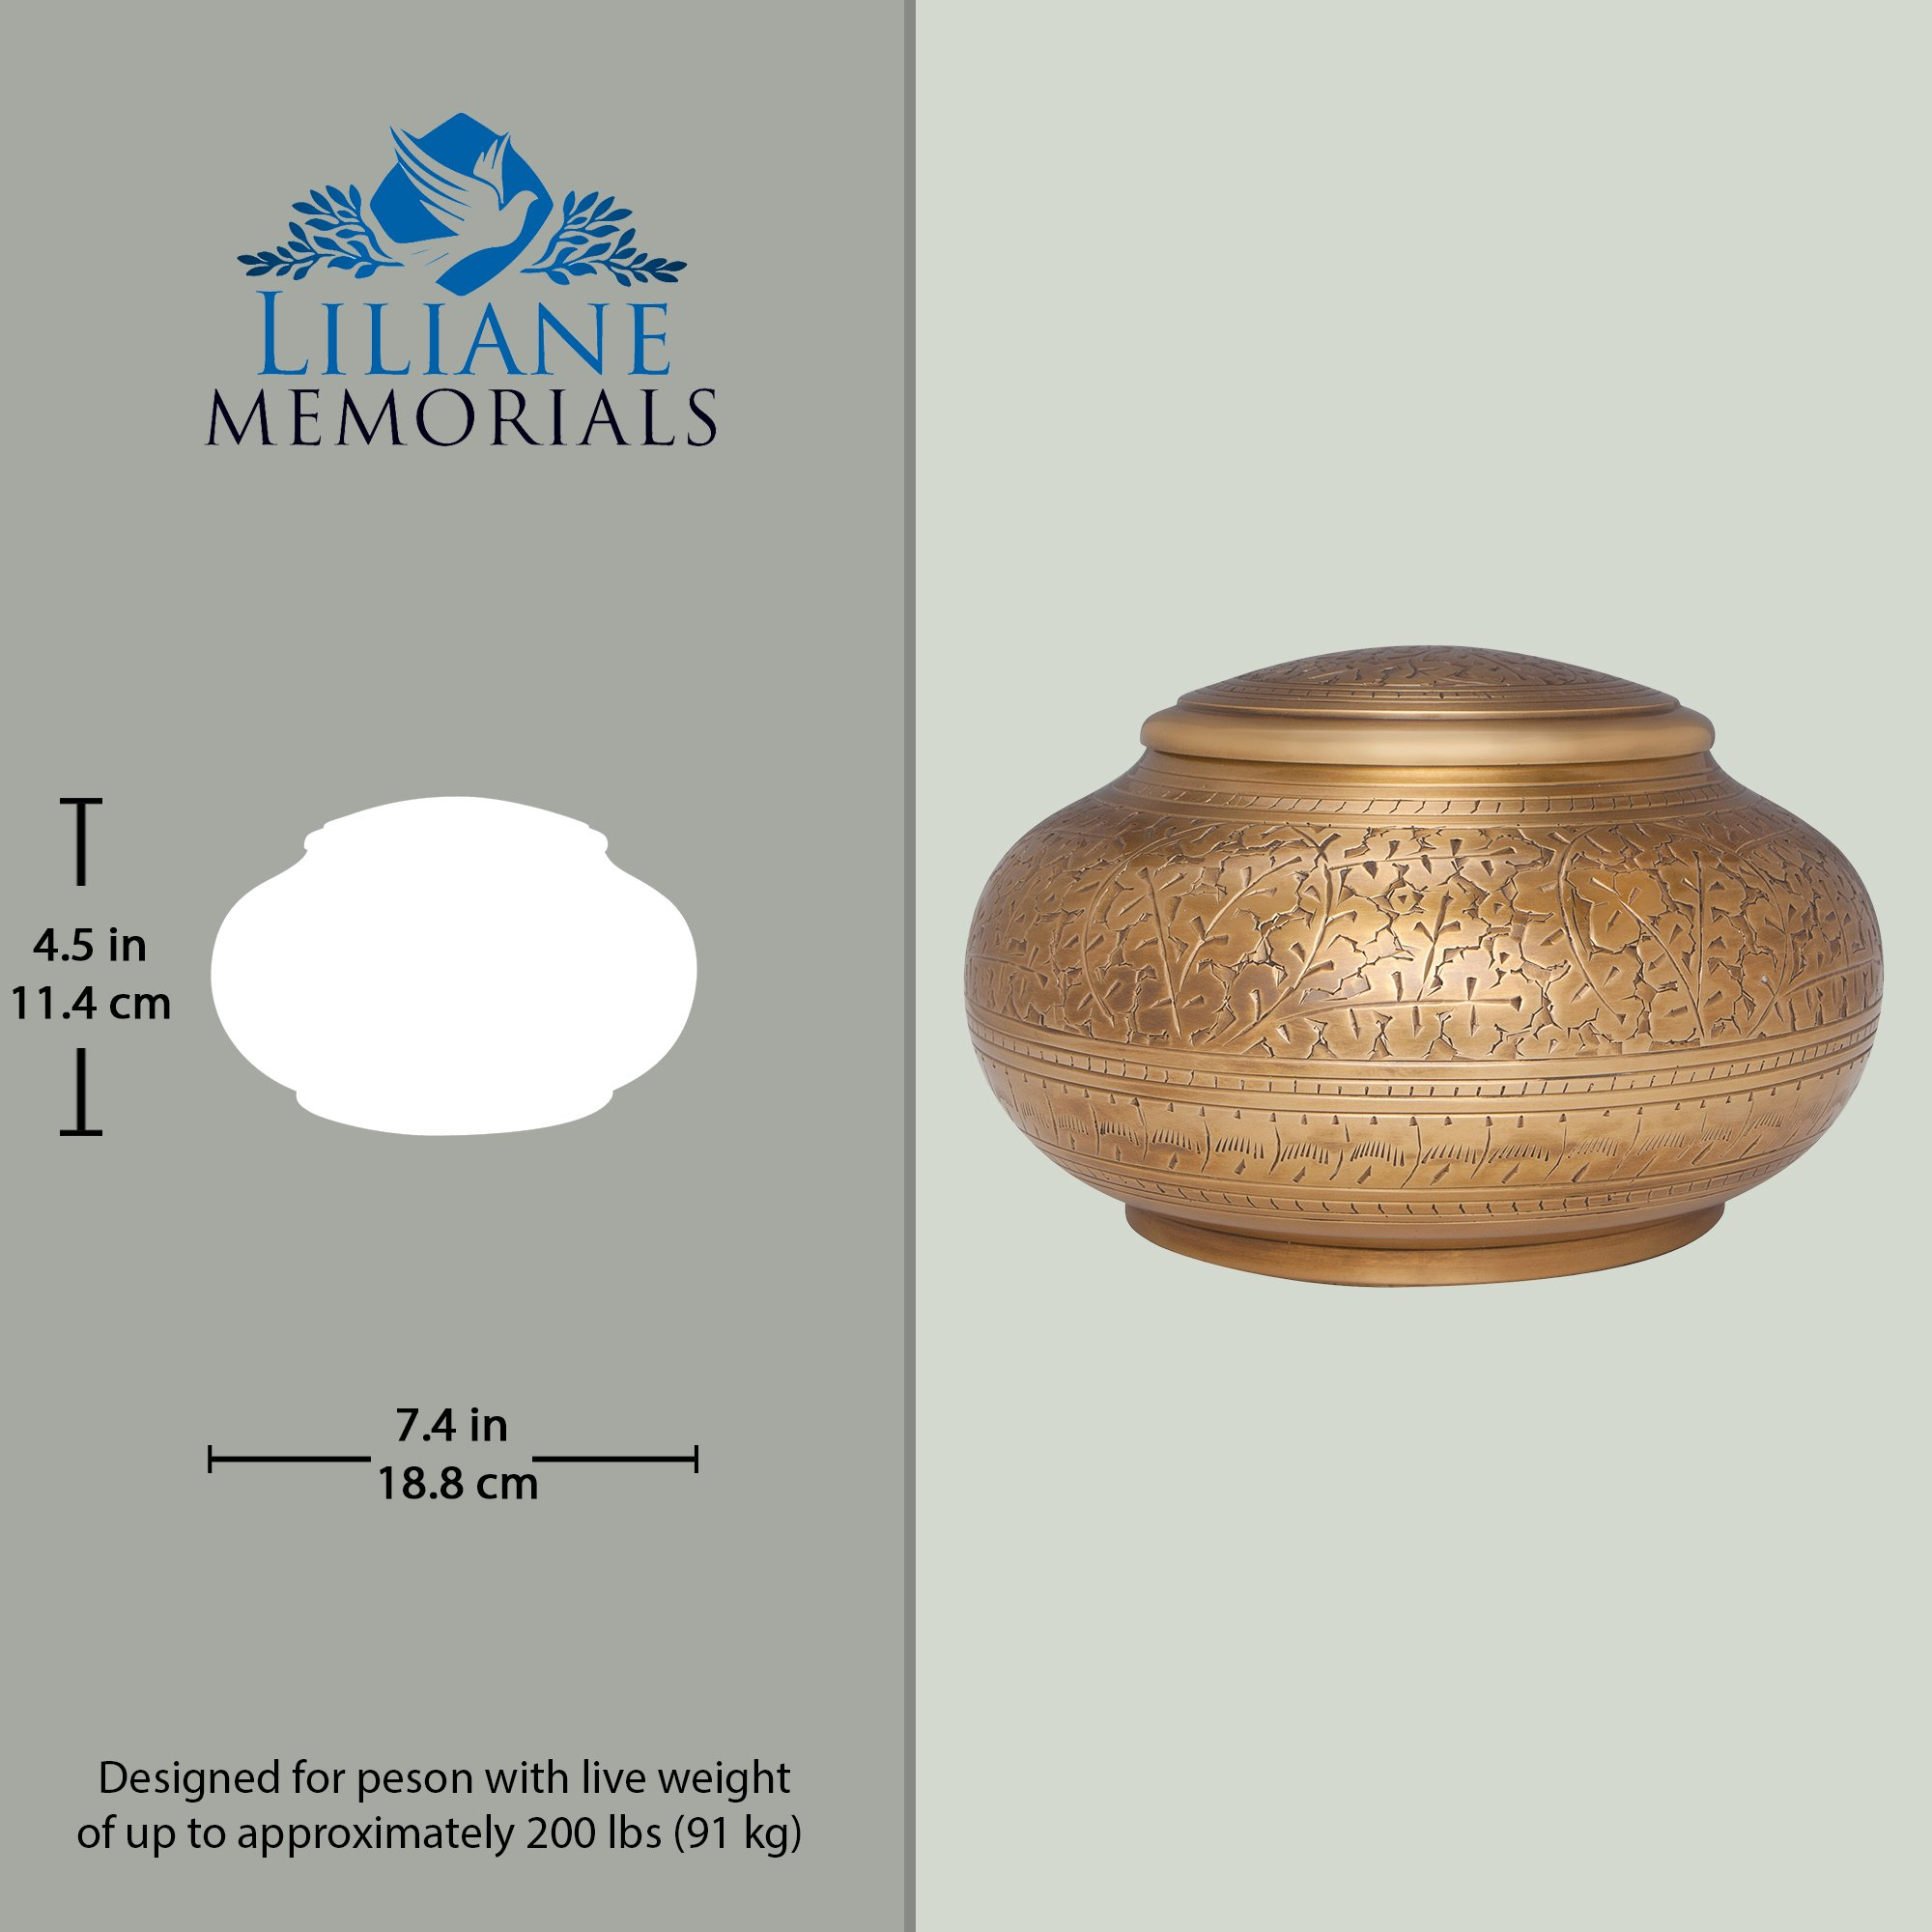 Bronze Antique Brass Funeral Urn by Liliane Memorials - Cremation Urn for Human Ashes - Hand Made in Brass - Suitable for Cemetery Burial or Niche - Large Size fits remains of Adults up to 110 lbs by Liliane Memorials (Image #4)